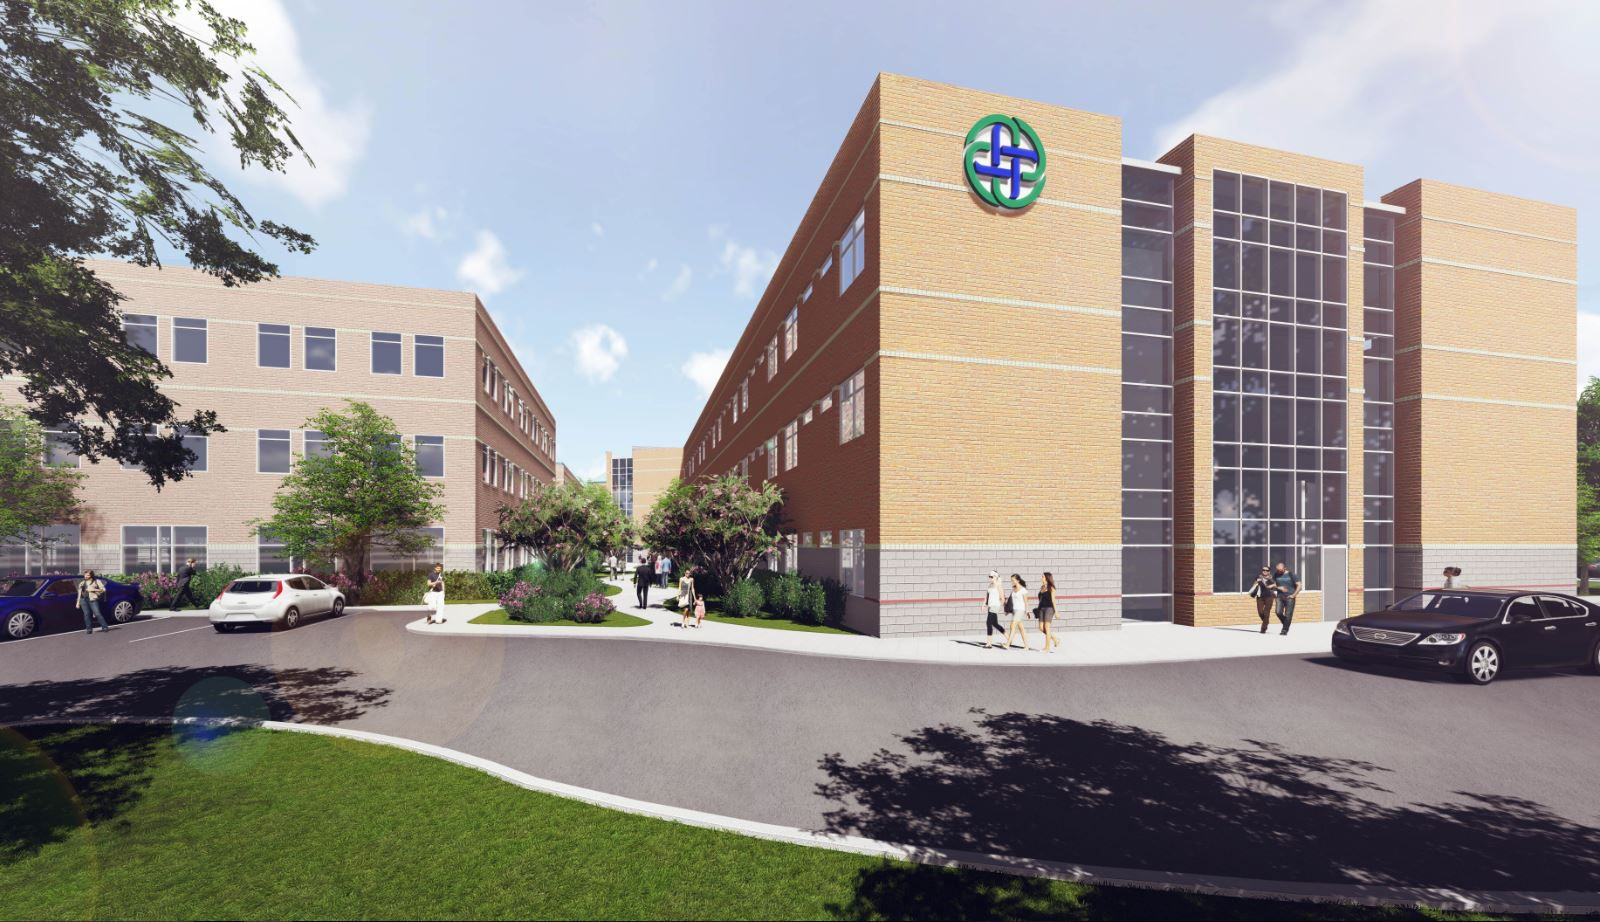 Texas Health Presbyterian Hospital Allen broke ground Tuesday on a $68-million expansion project that will roughly double the size of the current hospital when it is finished in 2020.